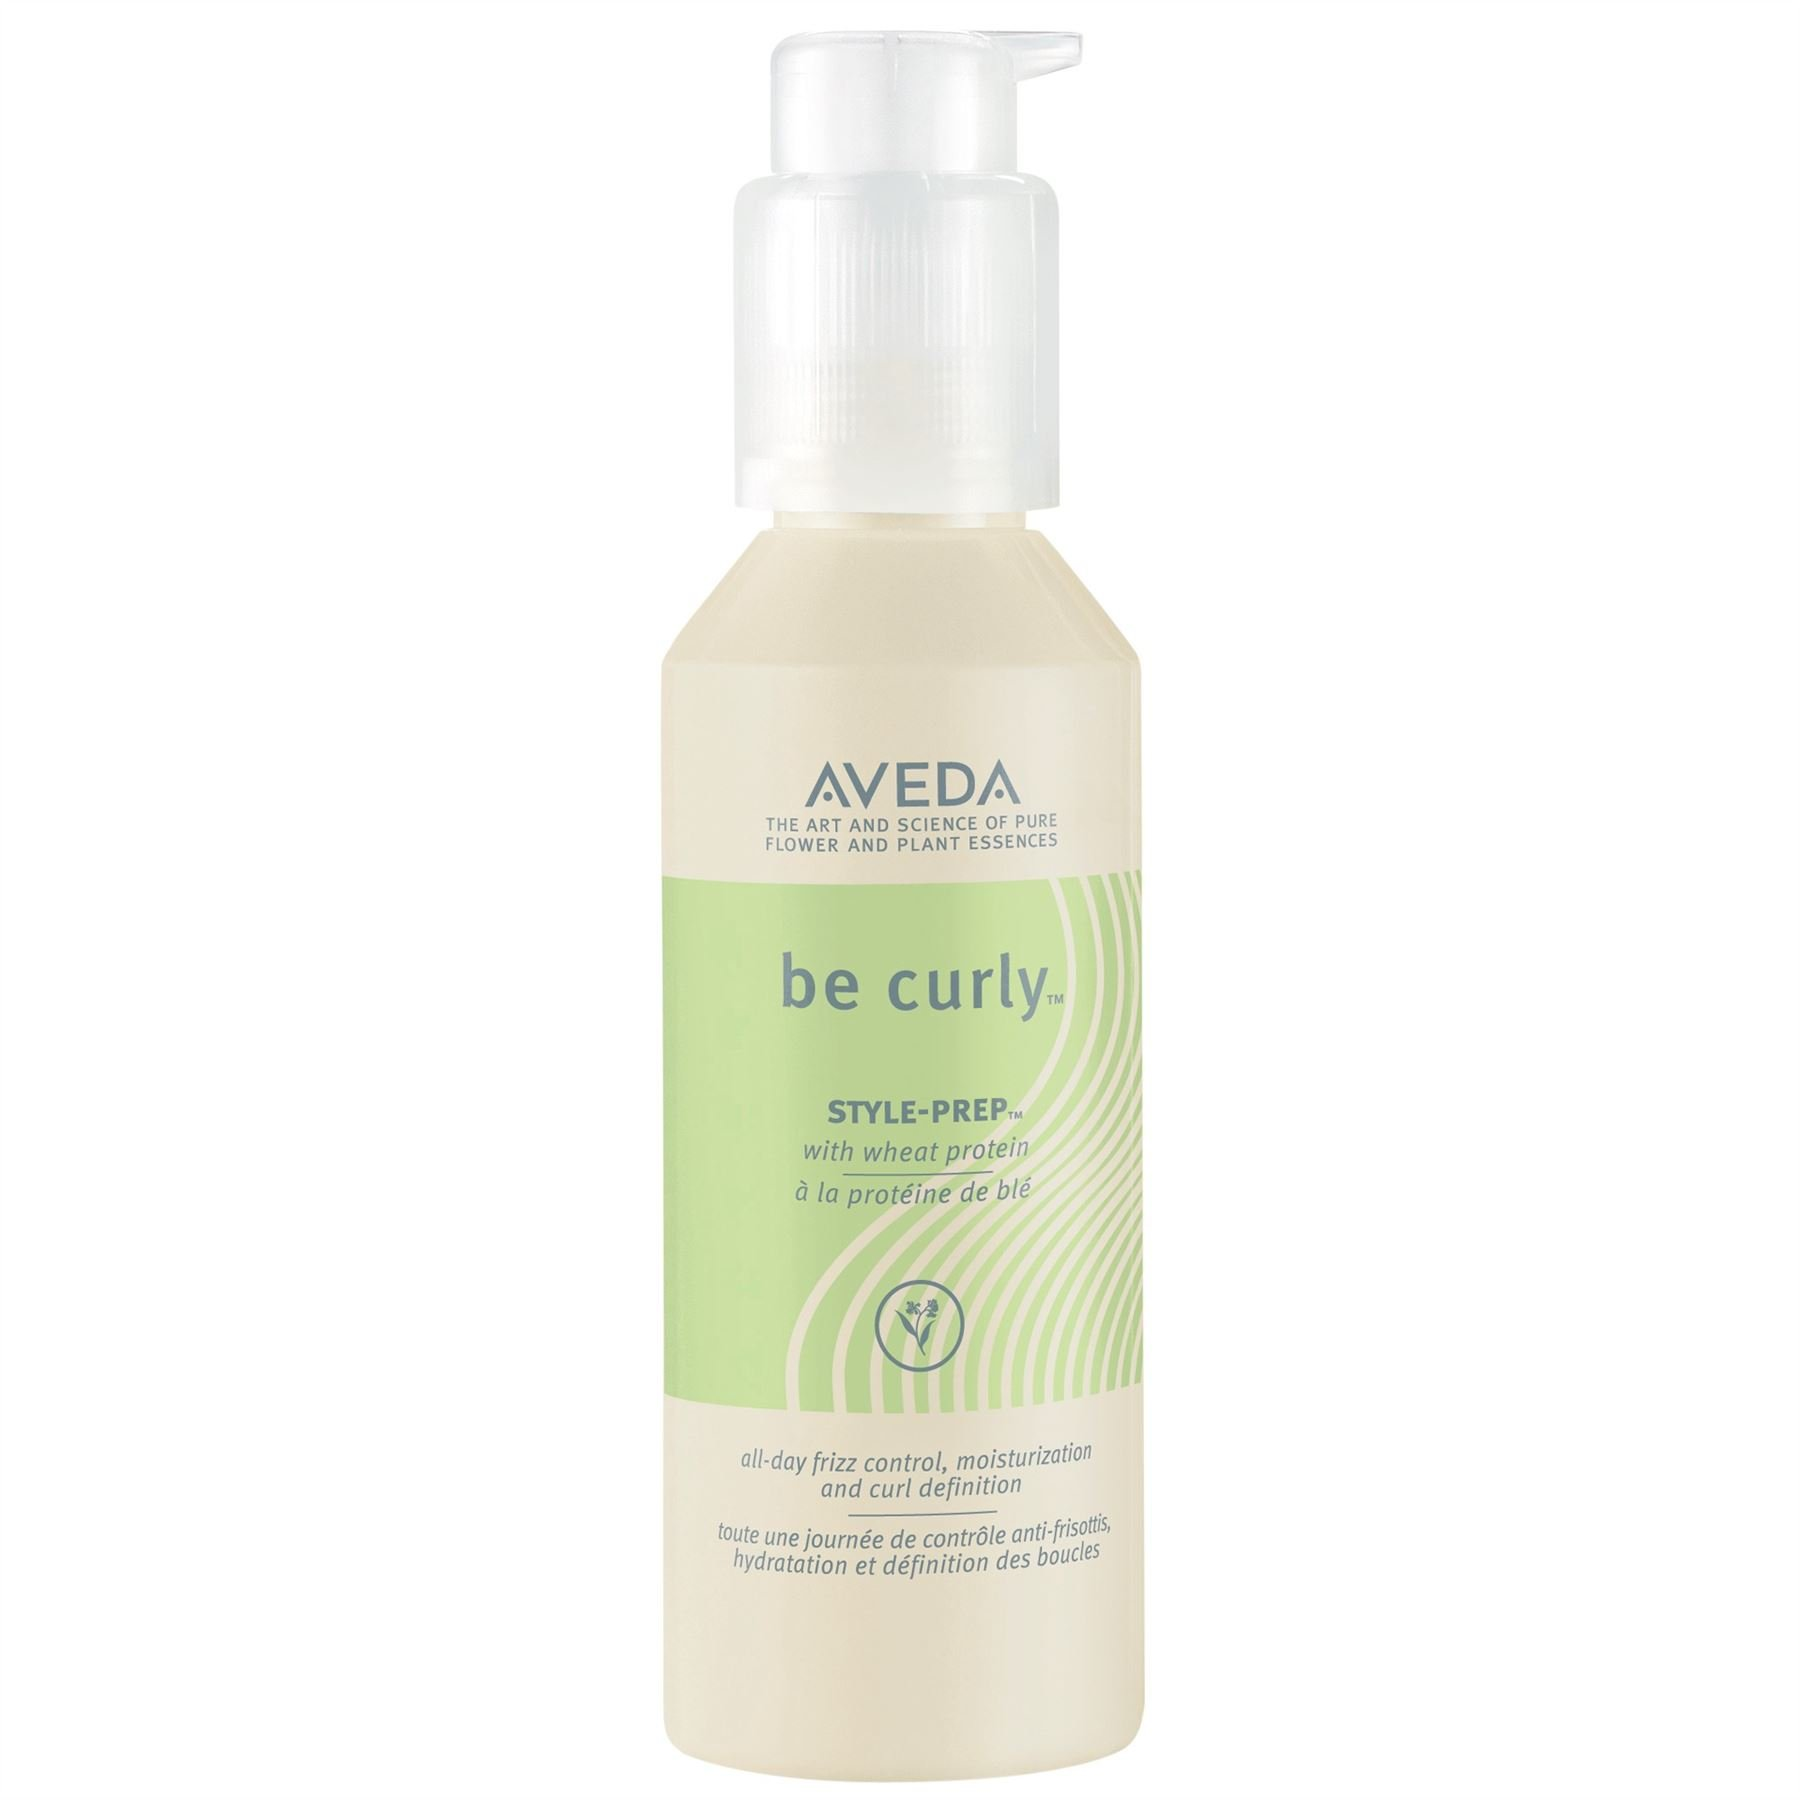 AVEDA Be Curly Style-Prep 100ml - Pack of 2 by AVEDA (Image #1)